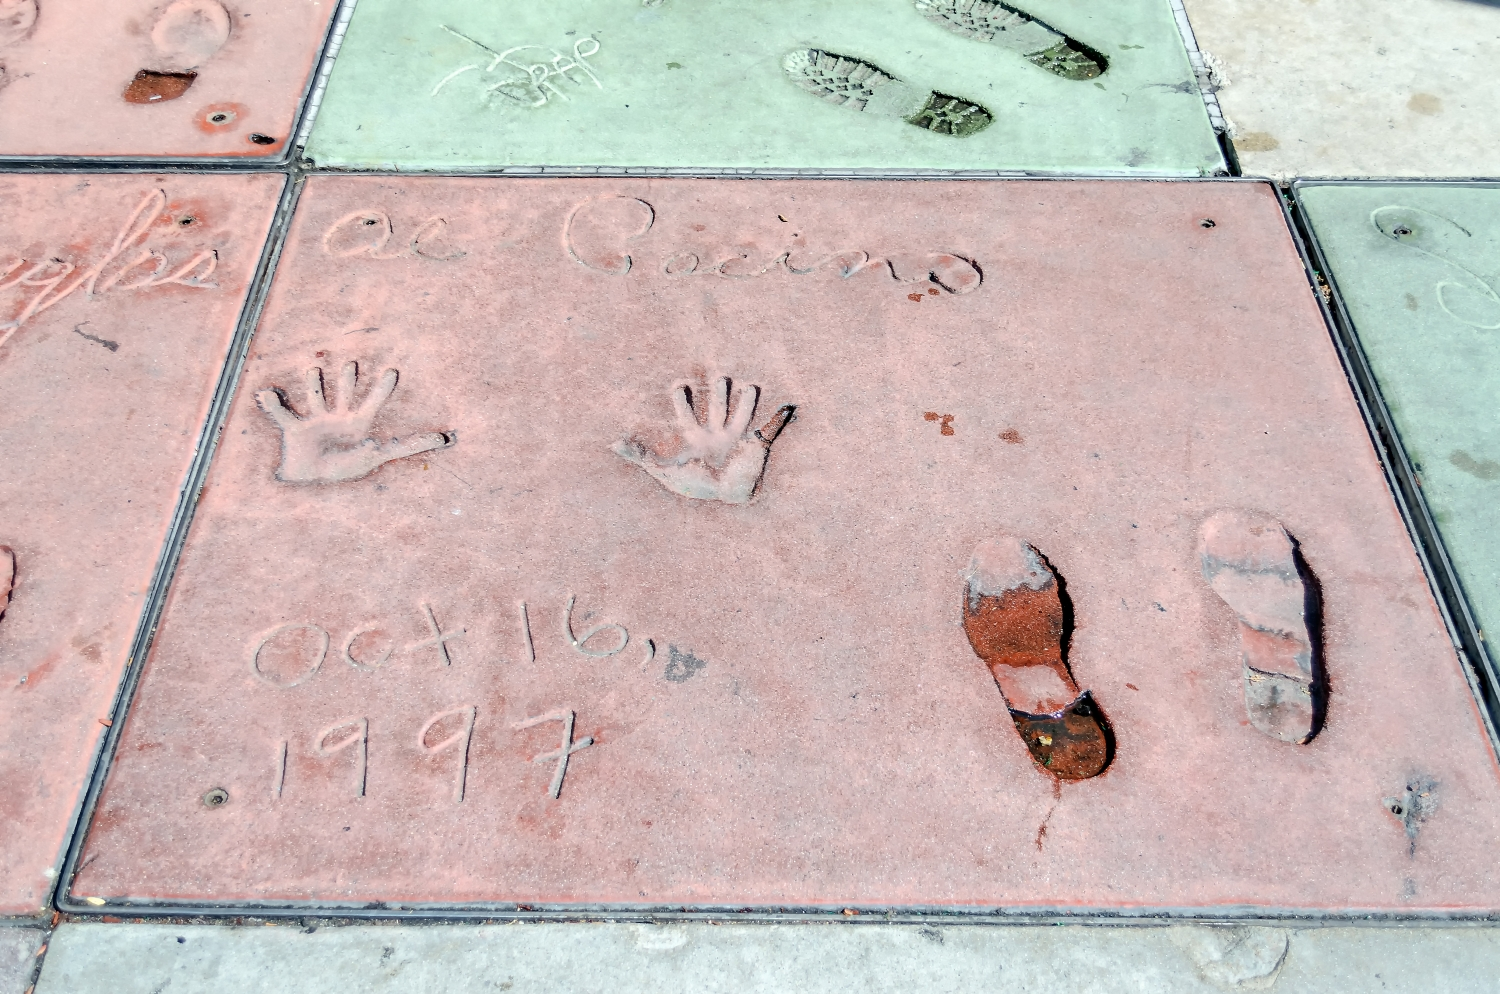 Al Pacino handprints in Hollywood Boulevard